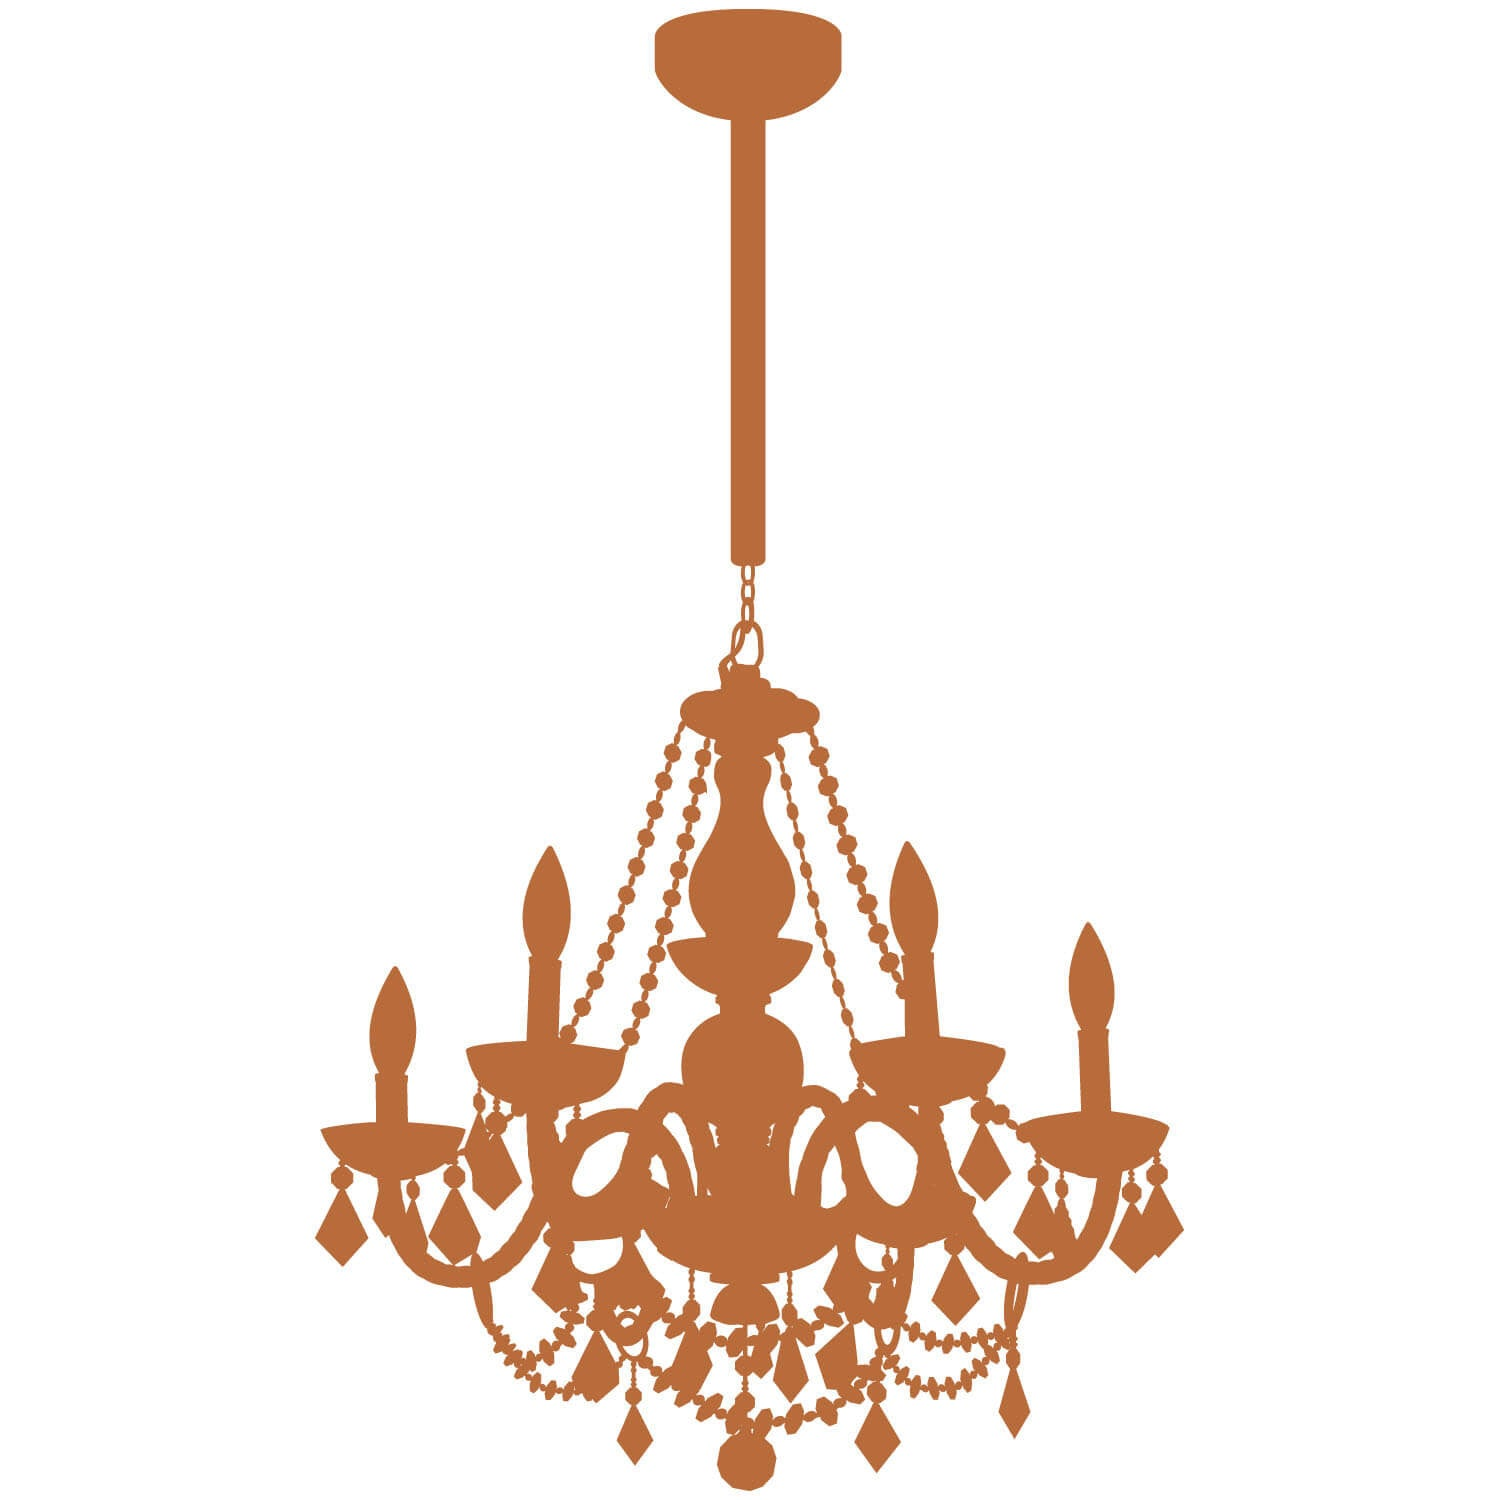 Chain Chandelier Decal - Copper